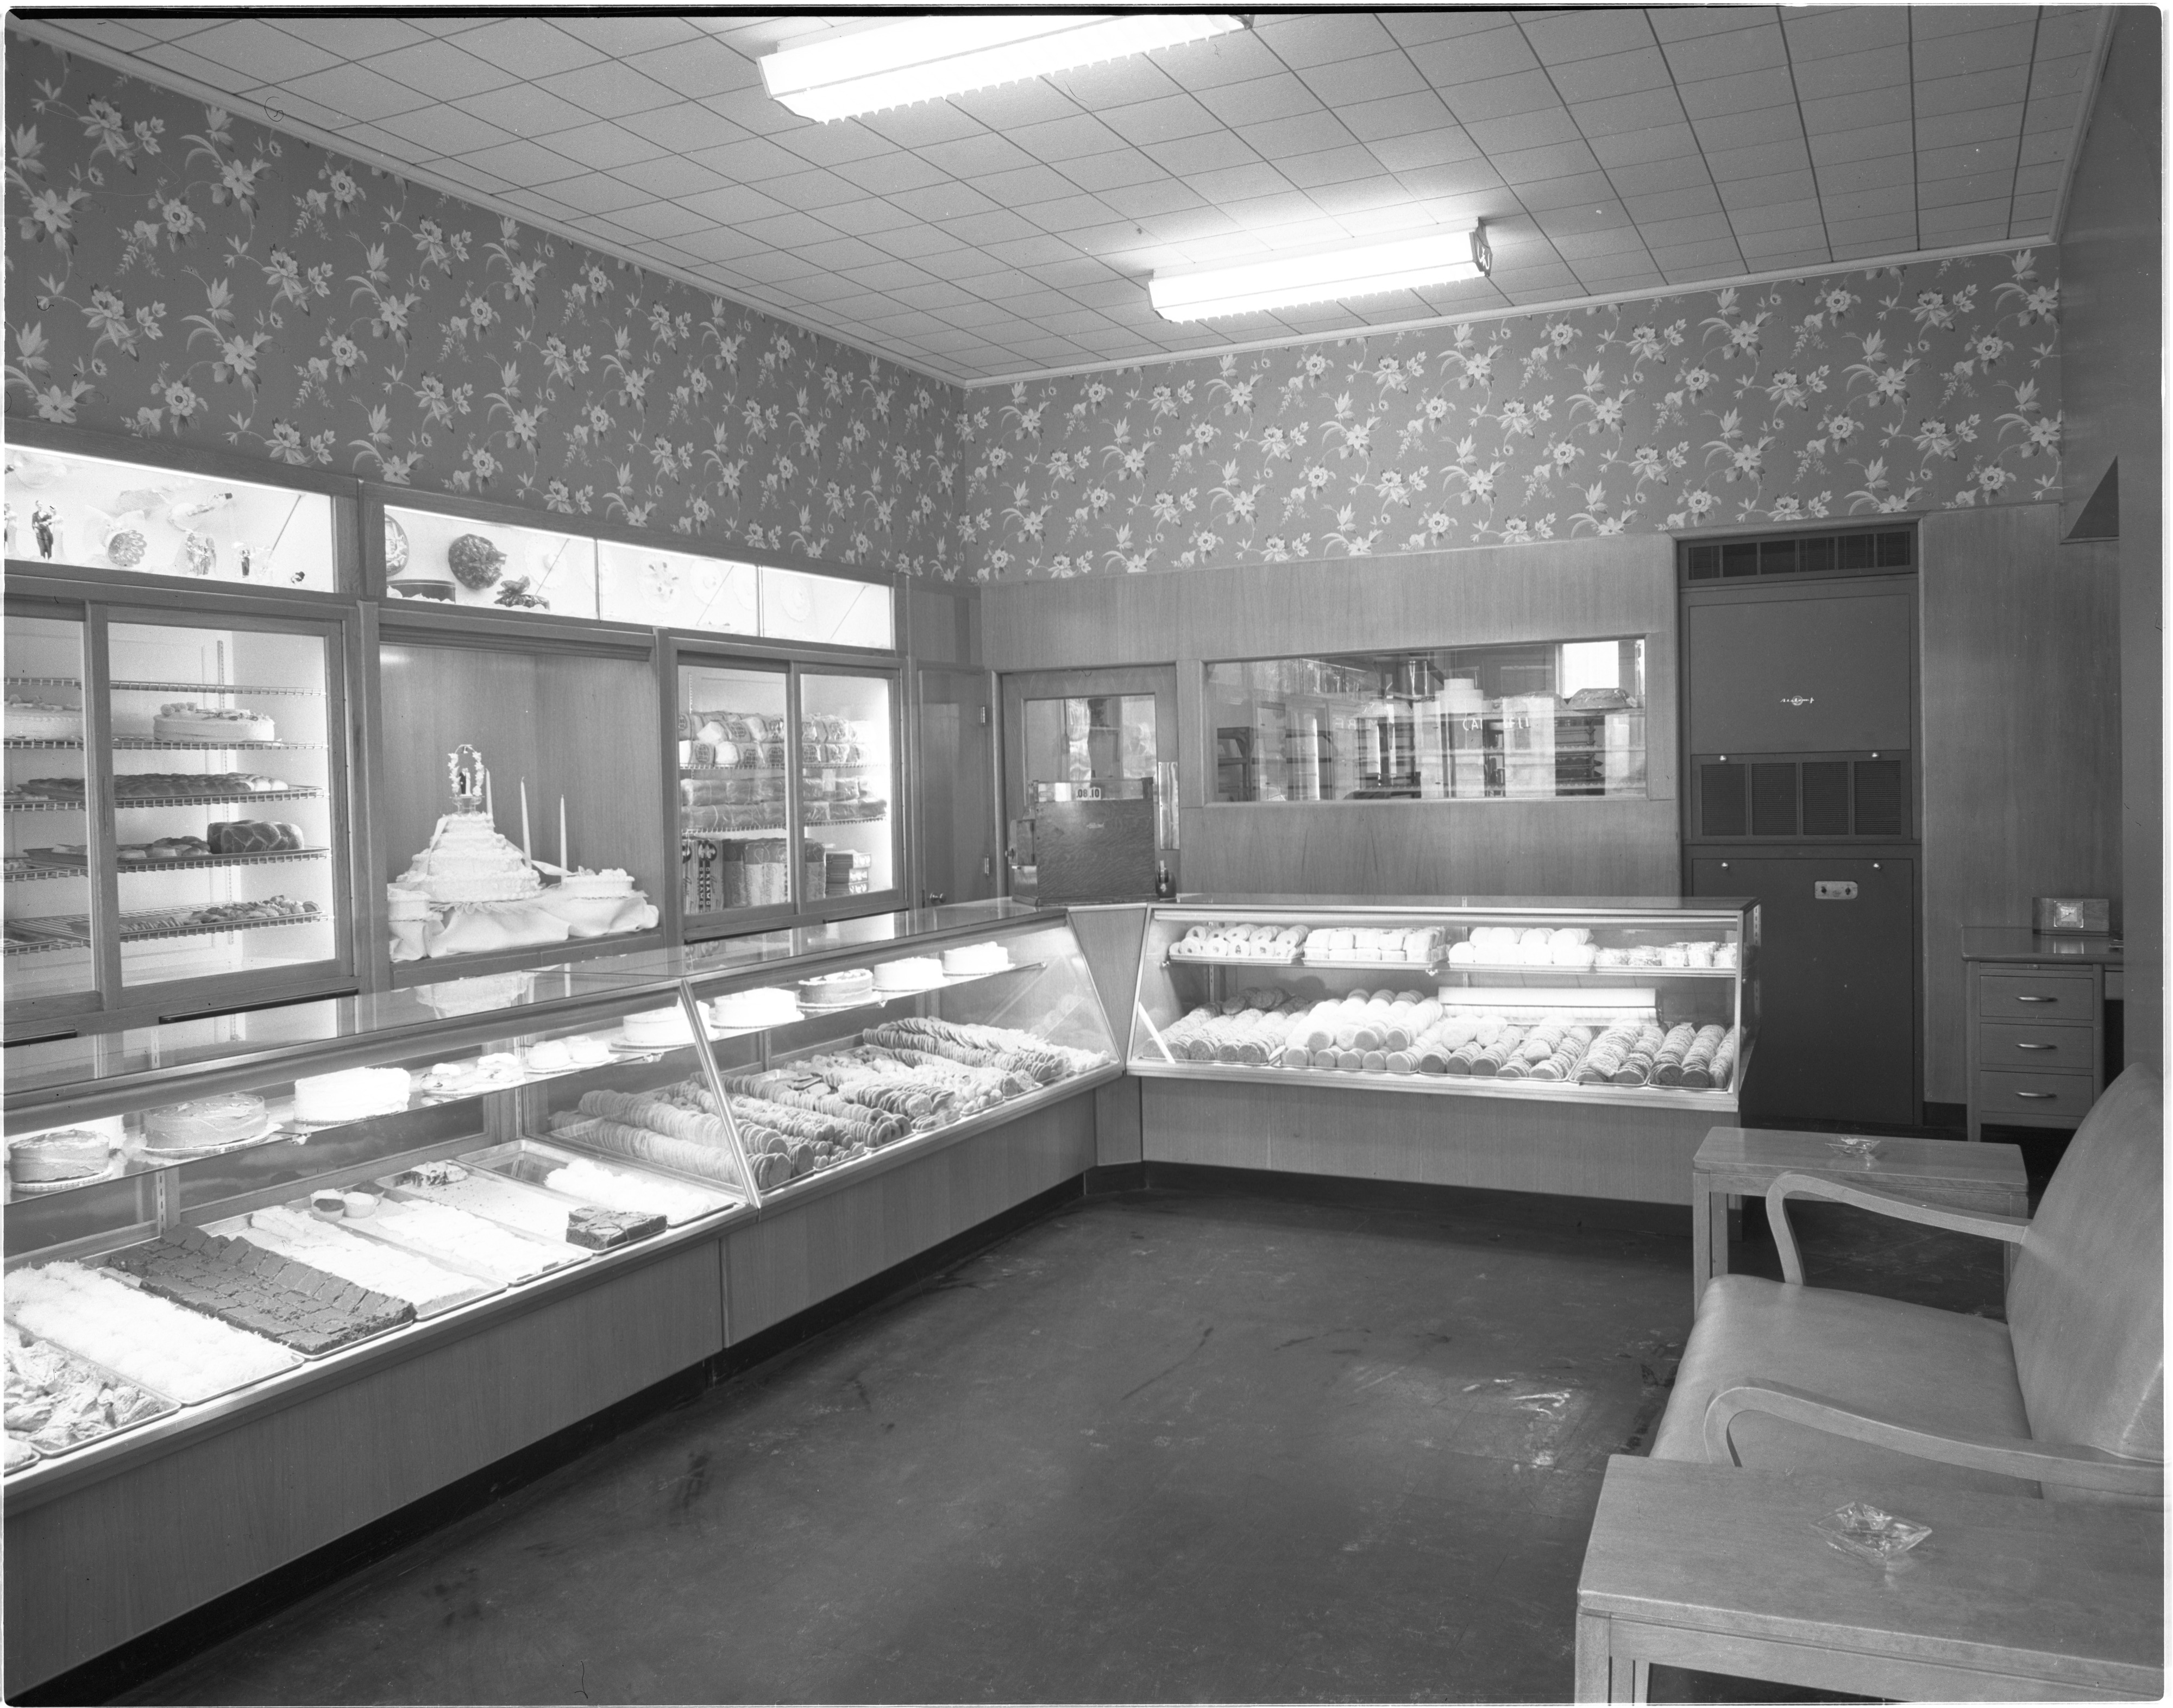 Interior Of Campbell Bakery, January 1948 image